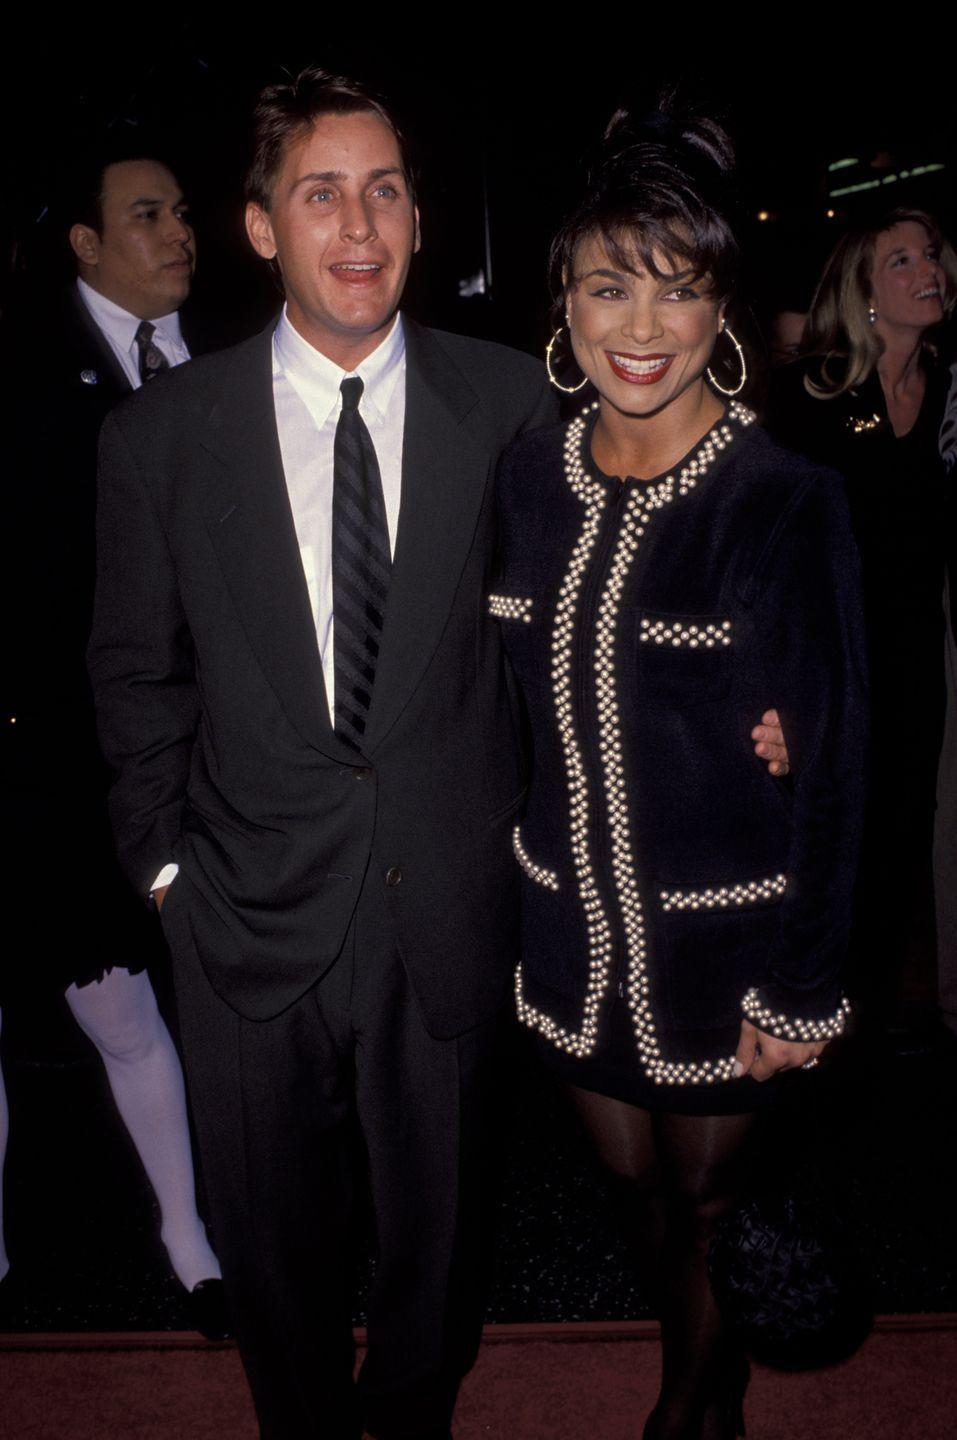 """<p>For those of you who don't know, before Paula Abdul's name was synonymous with <em>American Idol</em>, she was a big pop star in the '80s and '90s and she was married to another '80s star, Brat Pack member Emilio. (Emilio is also Martin Sheen's oldest son and Demi Moore's former fiancé, so there's that.) The couple got married in Santa Monica in 1992 but divorced two years later, reportedly because Paula wanted kids and Emilio (who already had two) didn't. <a href=""""https://ew.com/article/1998/04/24/paula-abdul-and-emilio-estevez-together-forever/"""" rel=""""nofollow noopener"""" target=""""_blank"""" data-ylk=""""slk:Paula told People"""" class=""""link rapid-noclick-resp"""">Paula told<em> People</em></a>, """"It was very hard for him to admit that he couldn't handle having kids again. It was heartbreaking for us both.""""</p>"""